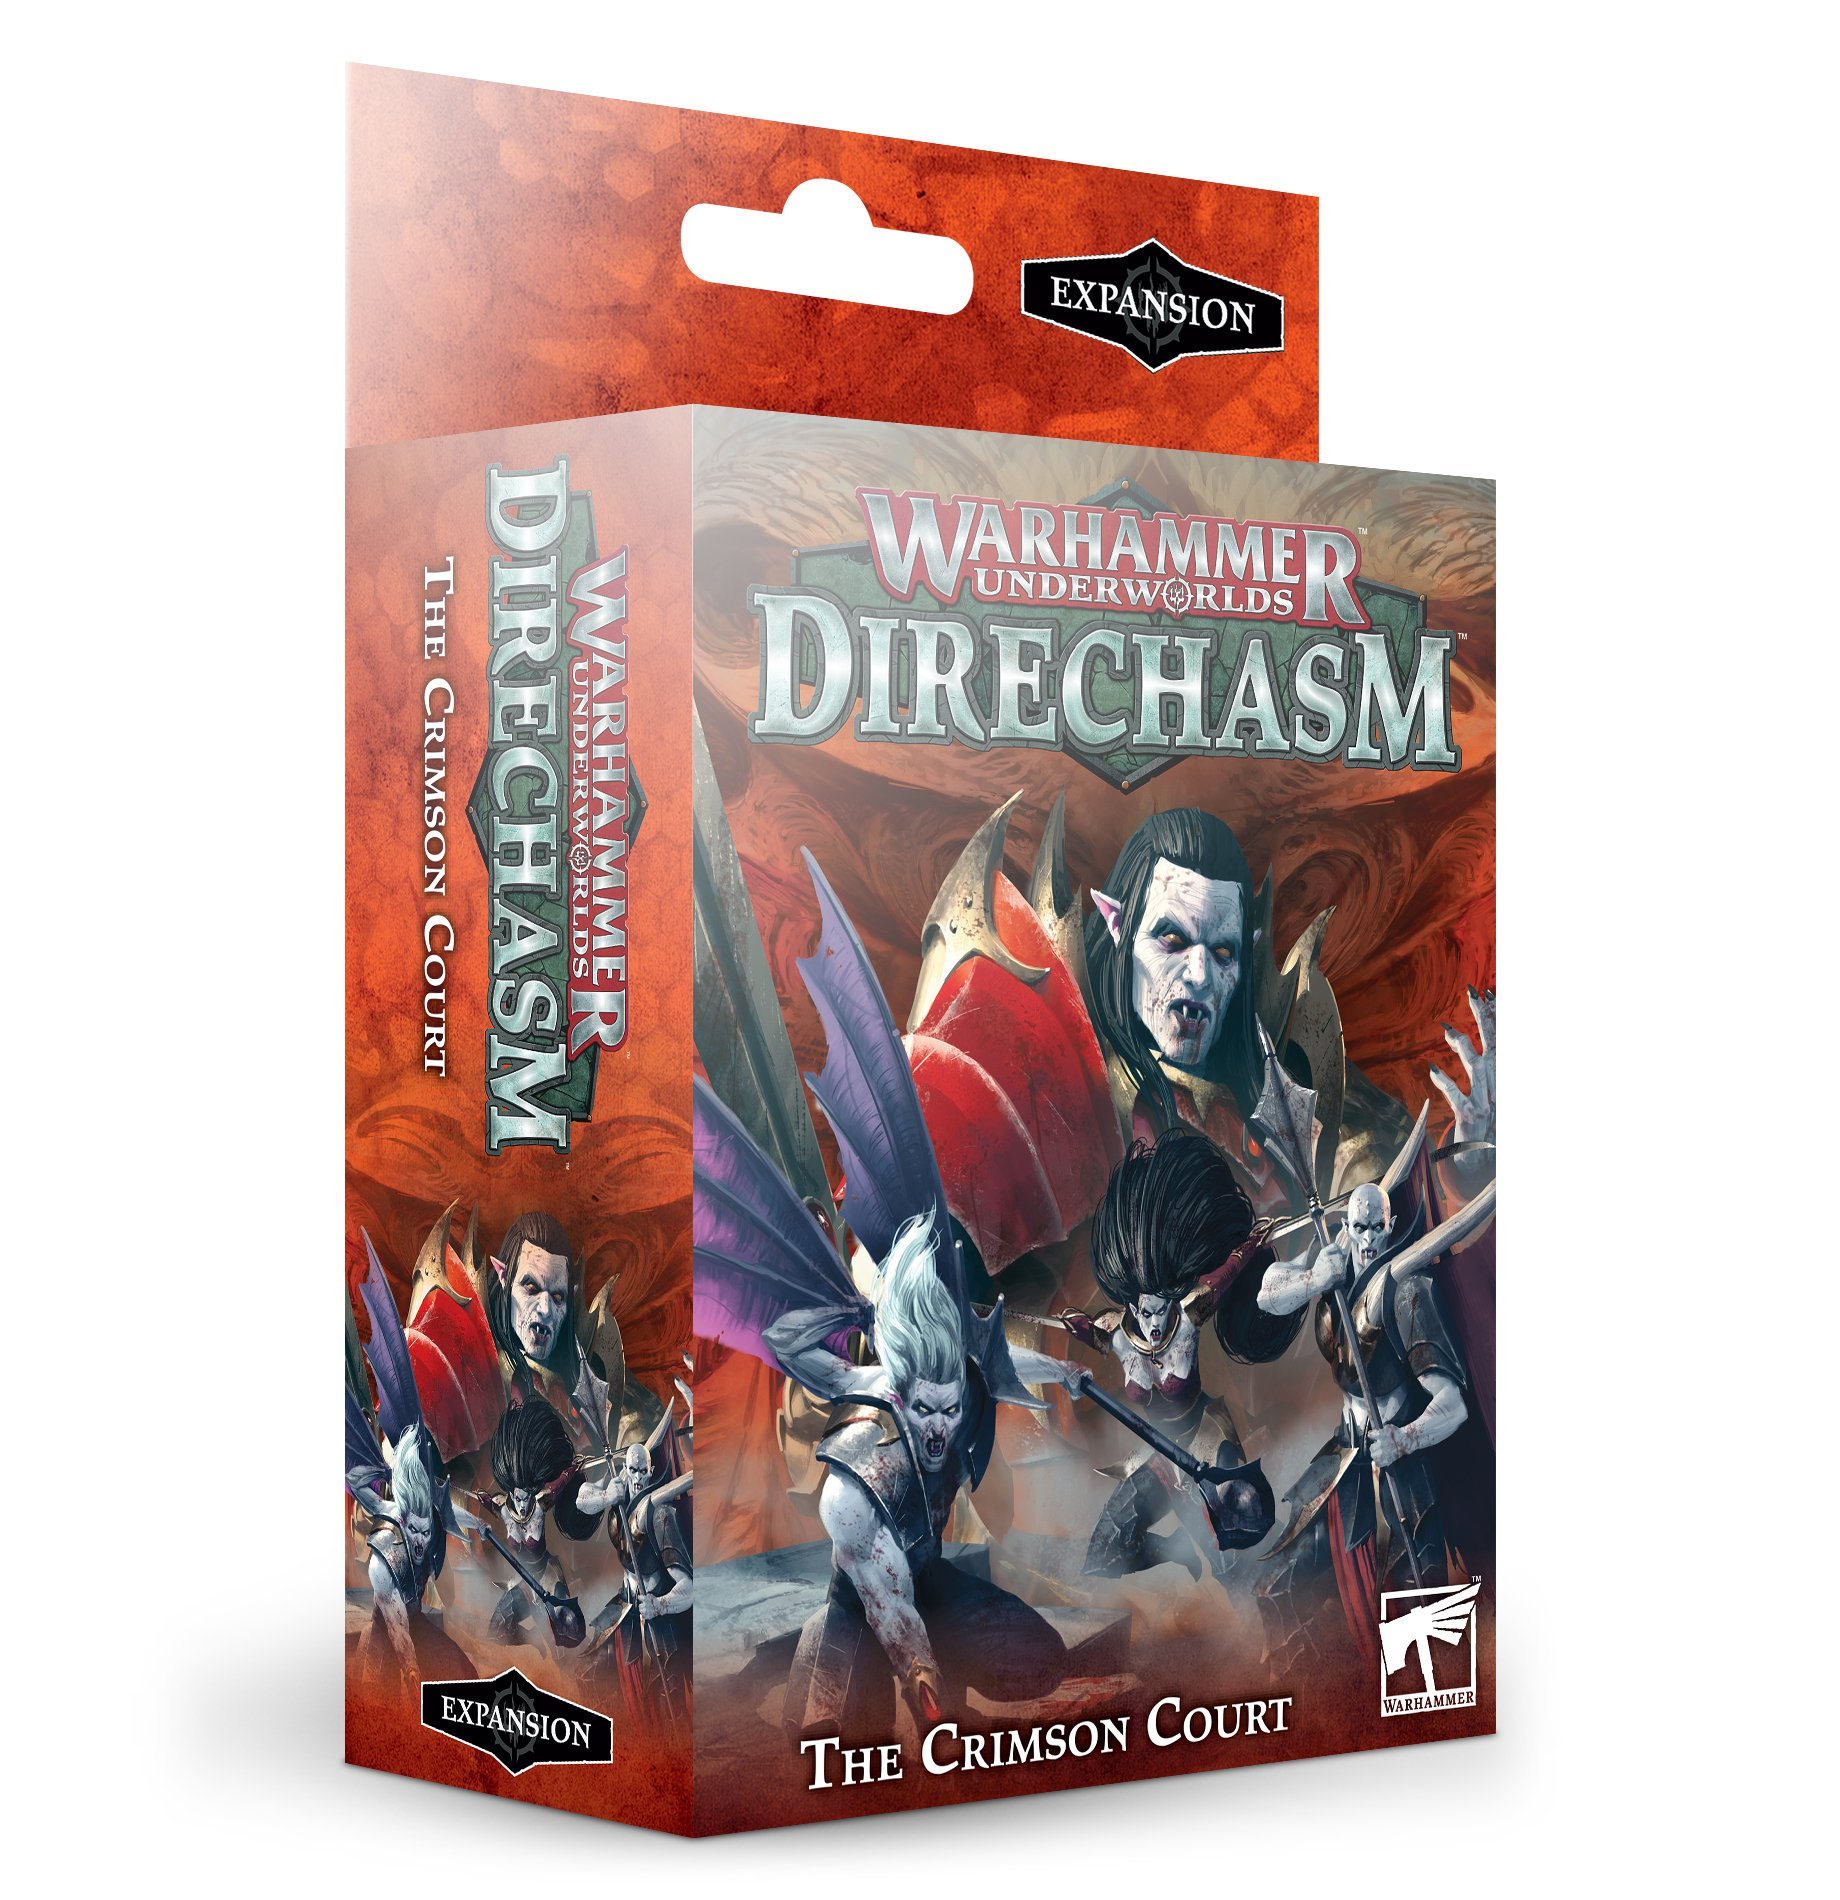 Warhammer Underworlds: Direchasm: The Crimson Court